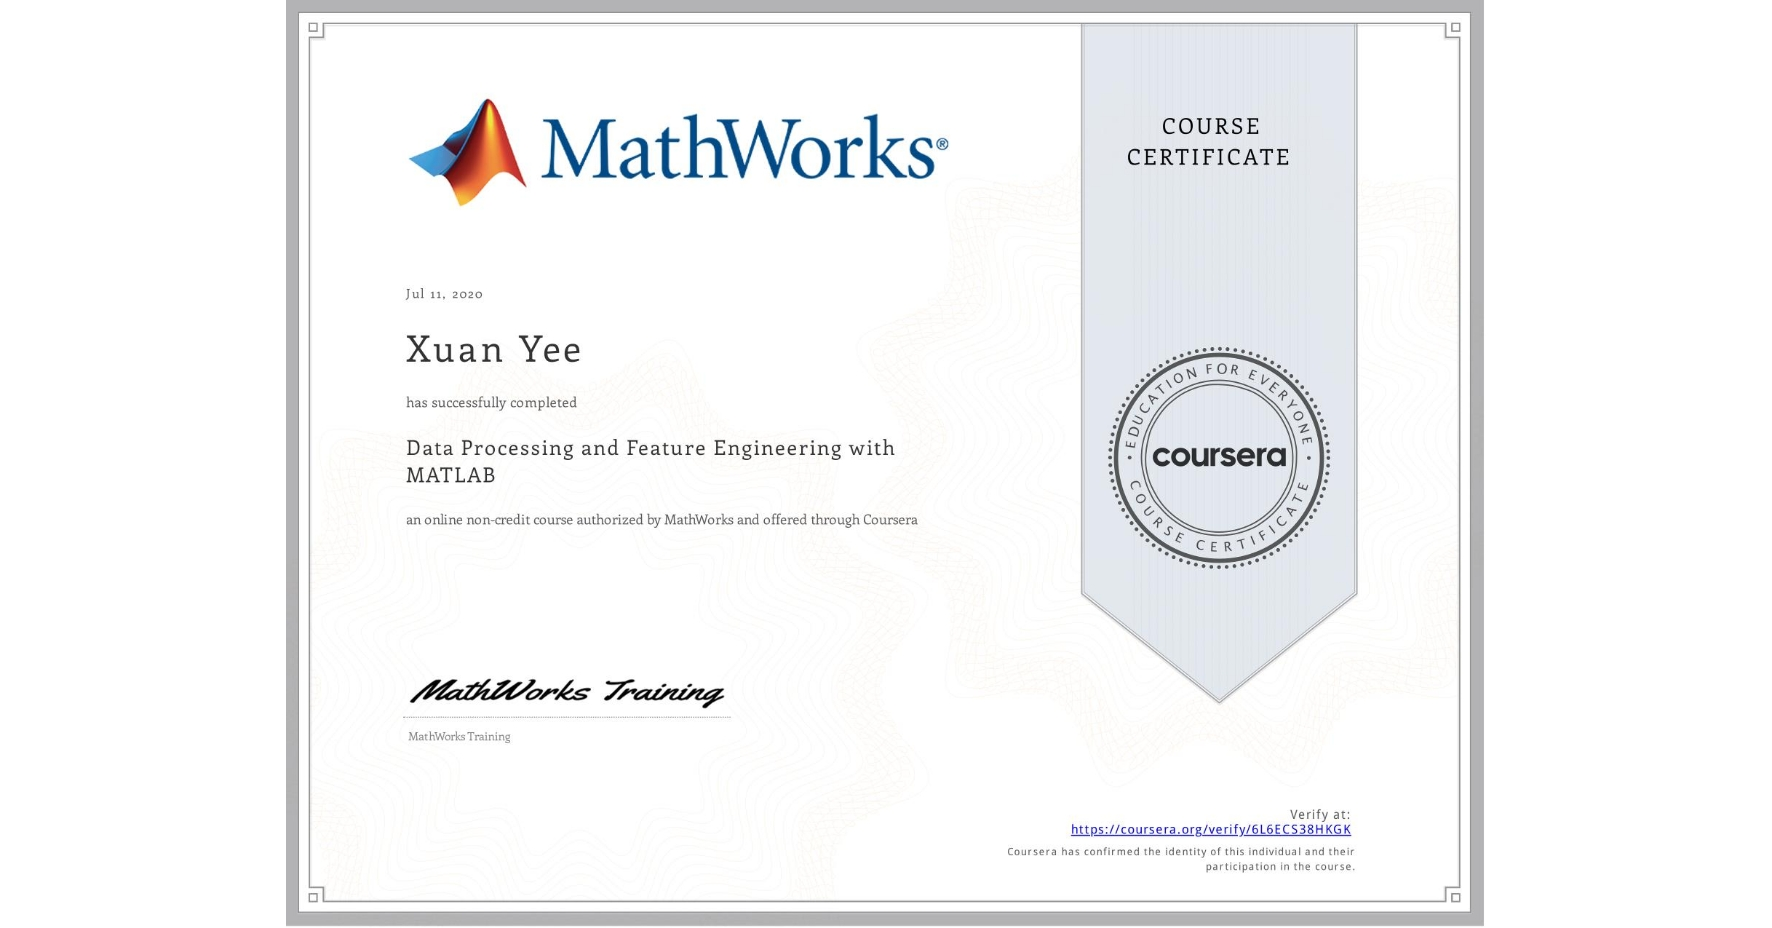 View certificate for Xuan Yee, Data Processing and Feature Engineering with MATLAB, an online non-credit course authorized by MathWorks and offered through Coursera